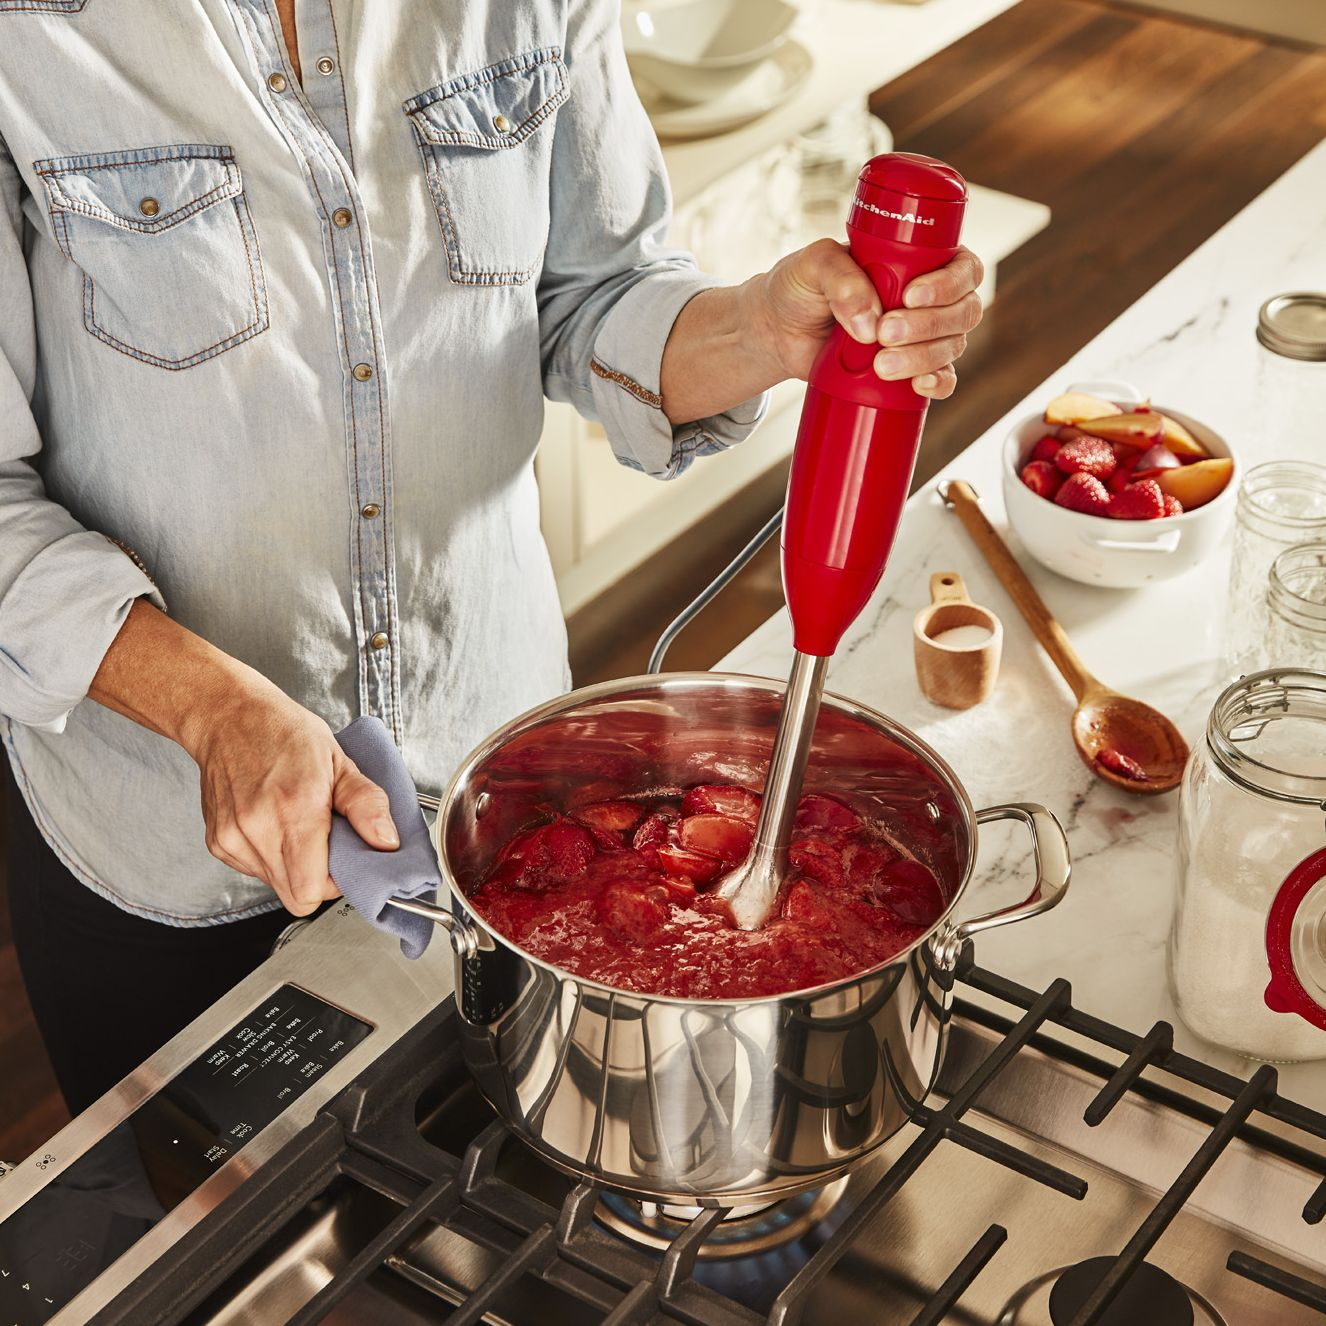 Kitchenaid Just Released A Queen Of Hearts 100 Year Anniversary